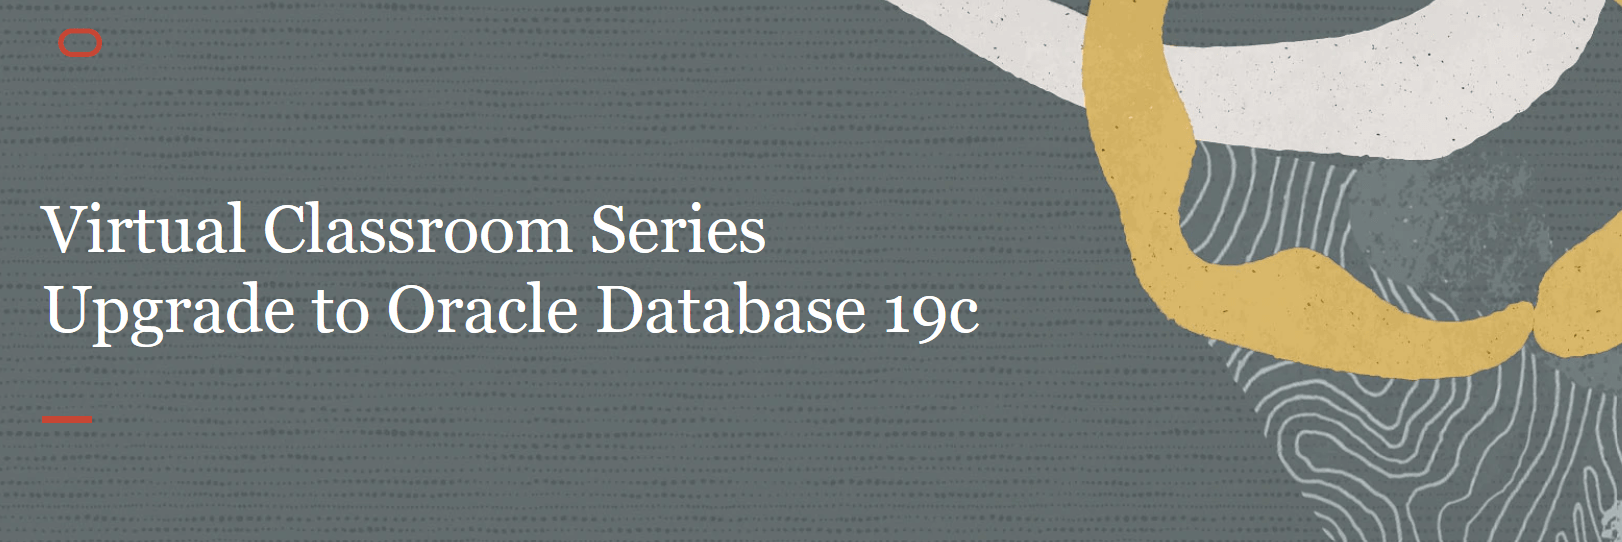 Virtual Classroom Series - Upgrade to Oracle Database 19c